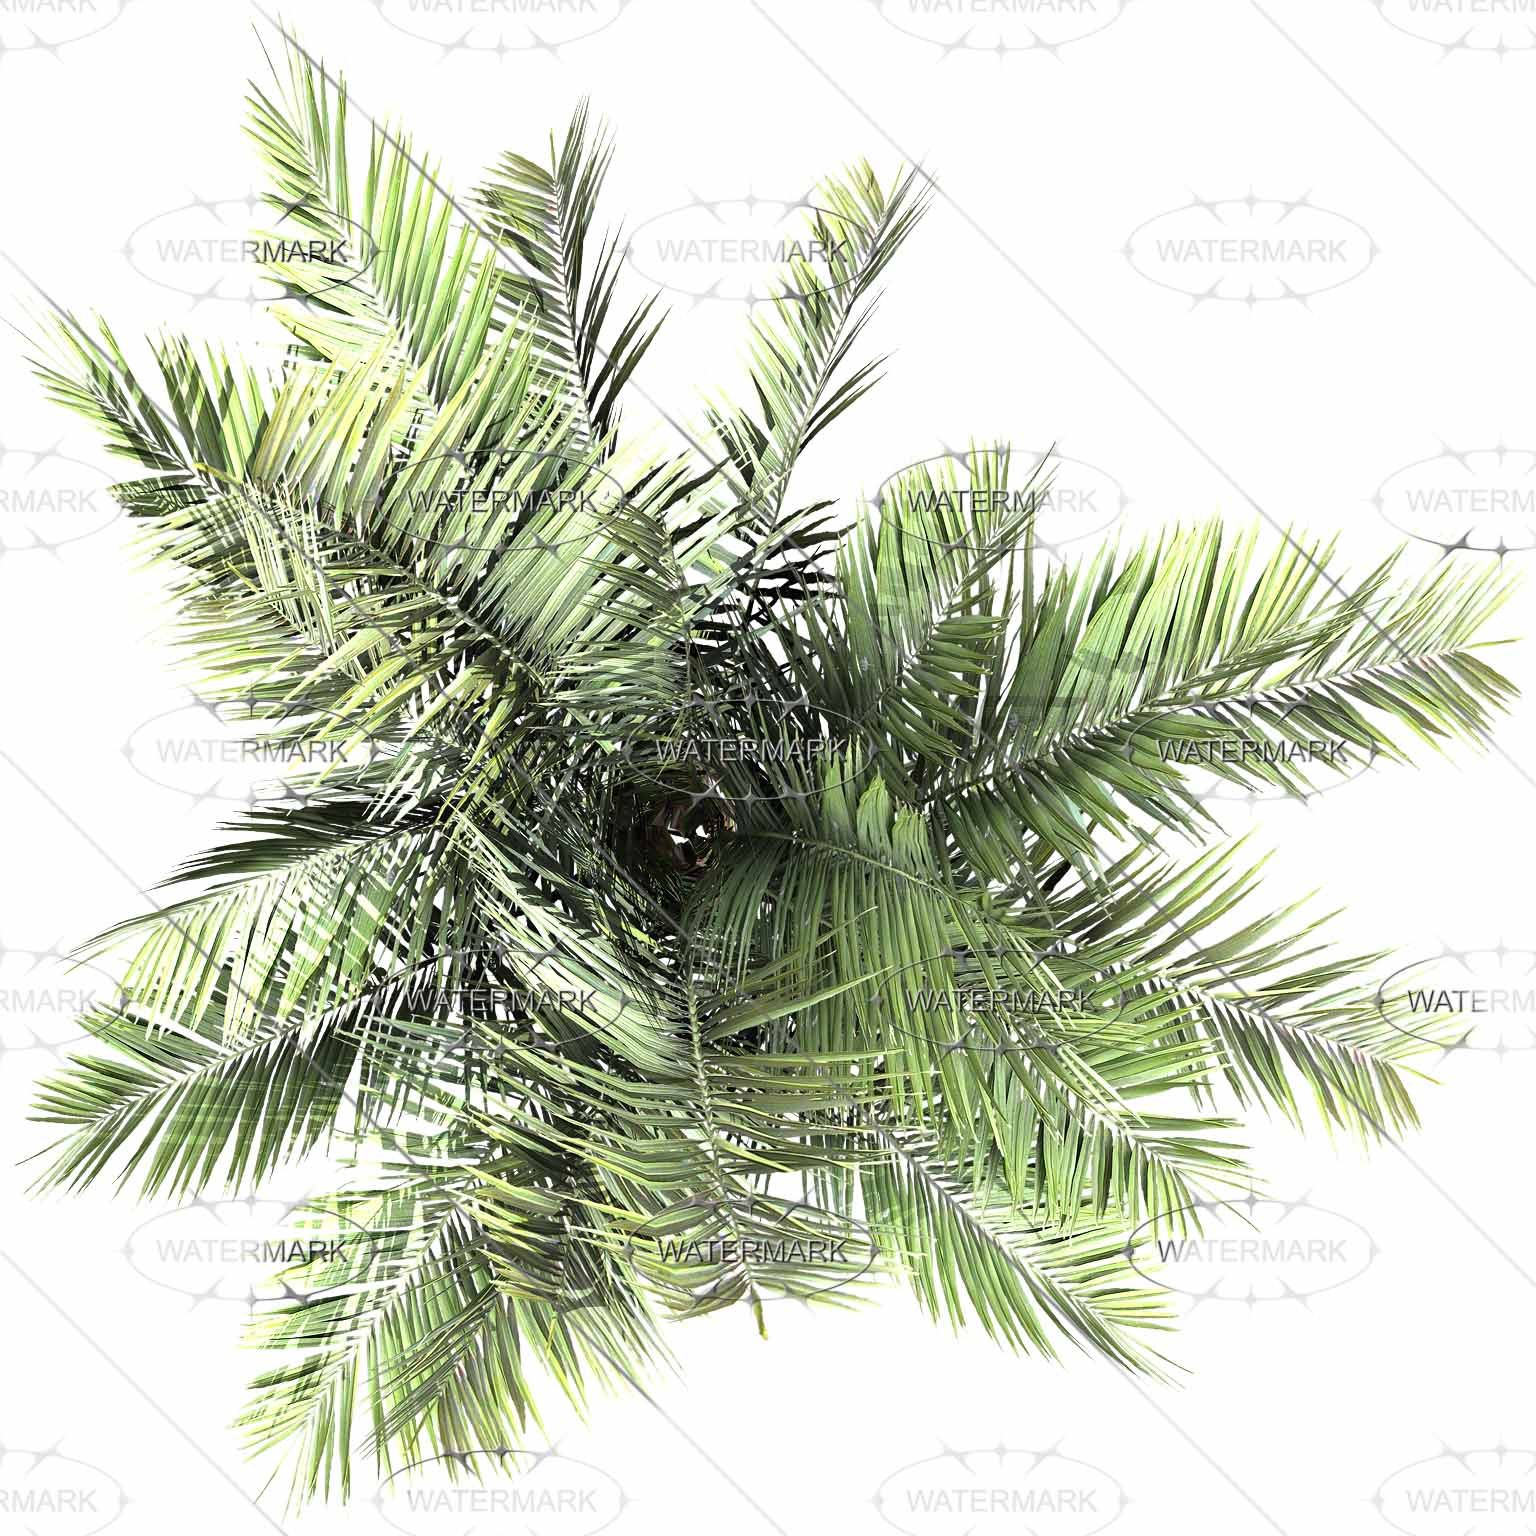 Top Palm 3 Set-VBVP_S_TOP_palm3000-000-00-00_00_0_all for Palm Tree Top View Png  268zmd